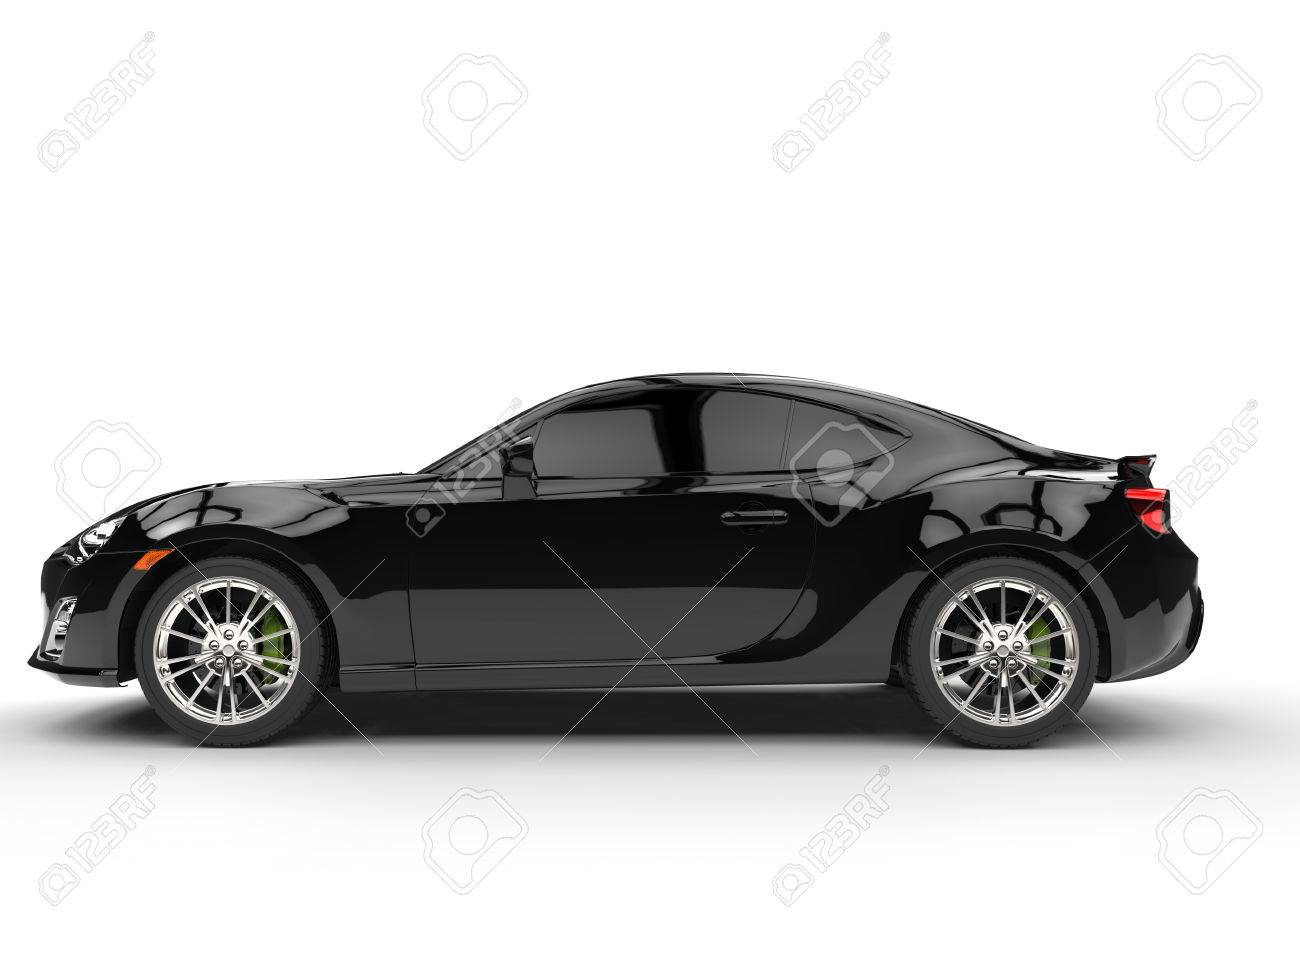 Generic Black Sports Car Side View Stock Photo Picture And